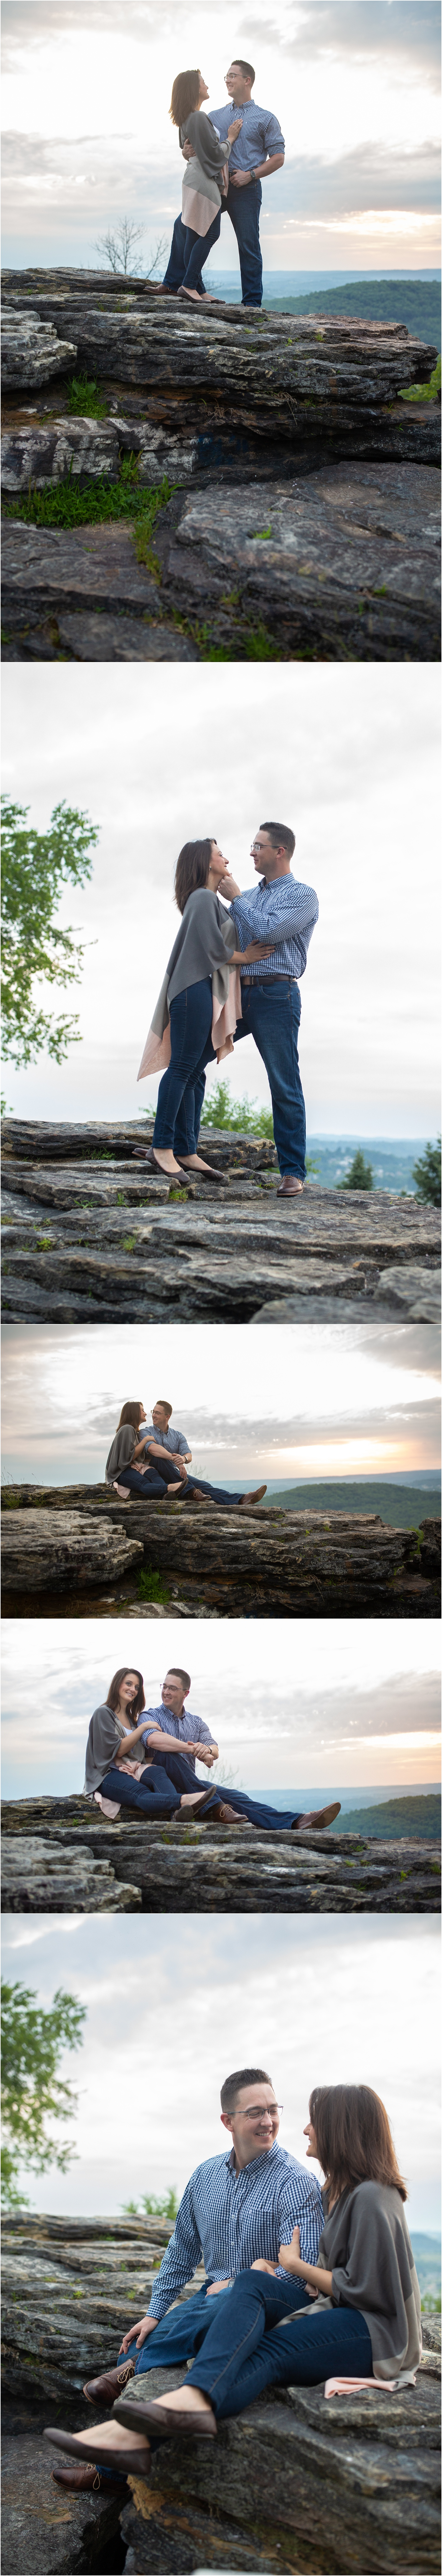 nicole and craig, maryn graves productions, wvu love, wv love story, wv love, morgantown wv, somd photography southern maryland photographer, nova photography, northern virginia photography, dc photographer, annapolis photographer